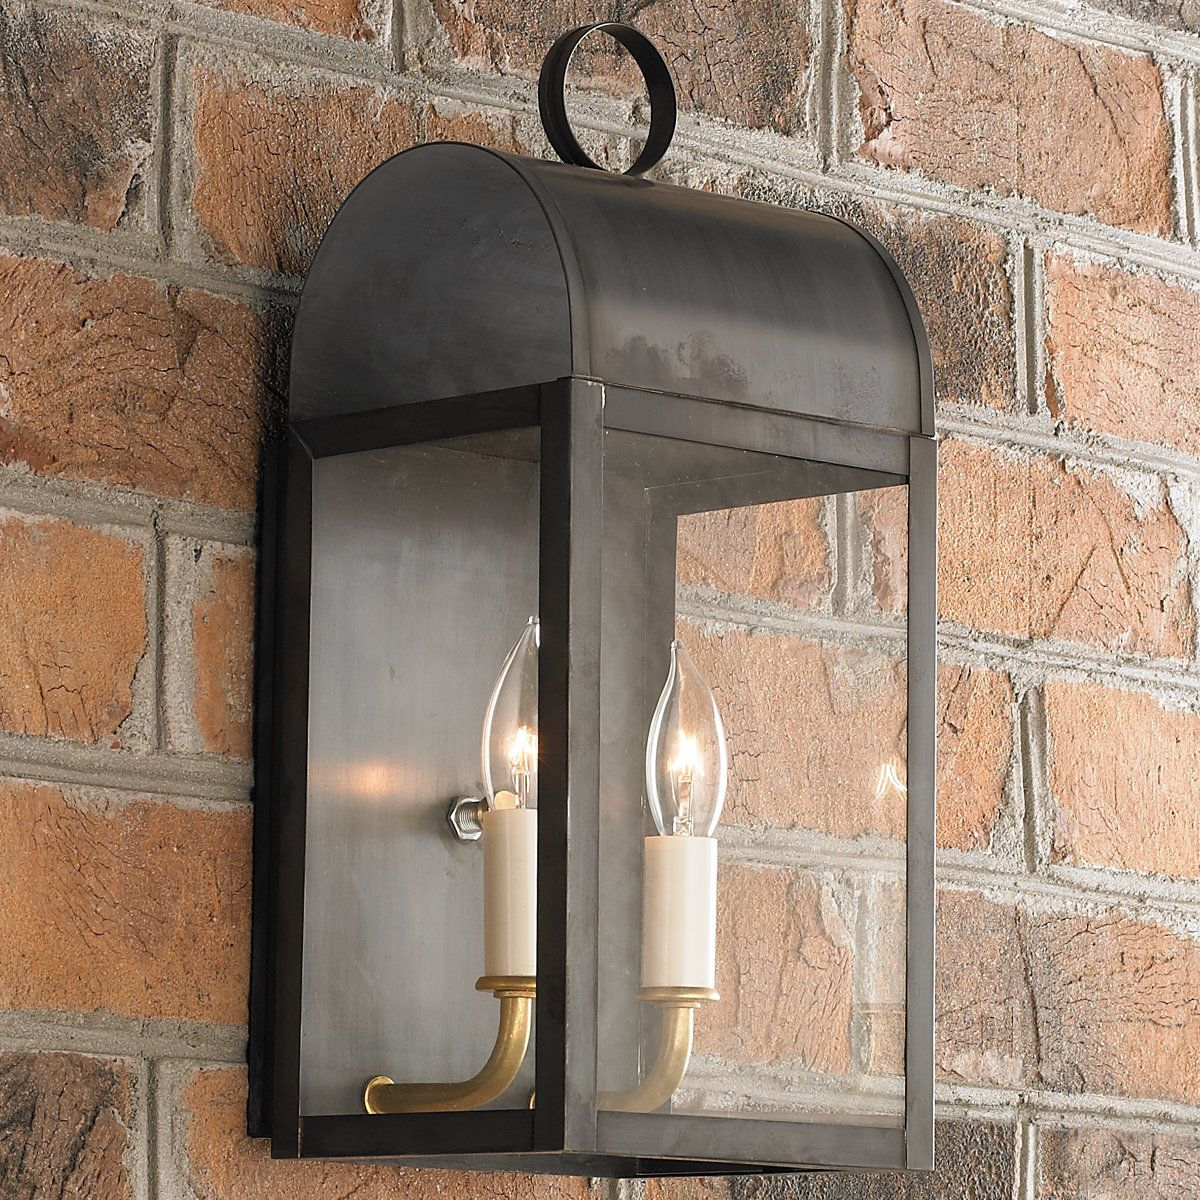 Arched outdoor light 2 light arch lights and hanover house arched outdoor light 2 light darkenedcopper aloadofball Images